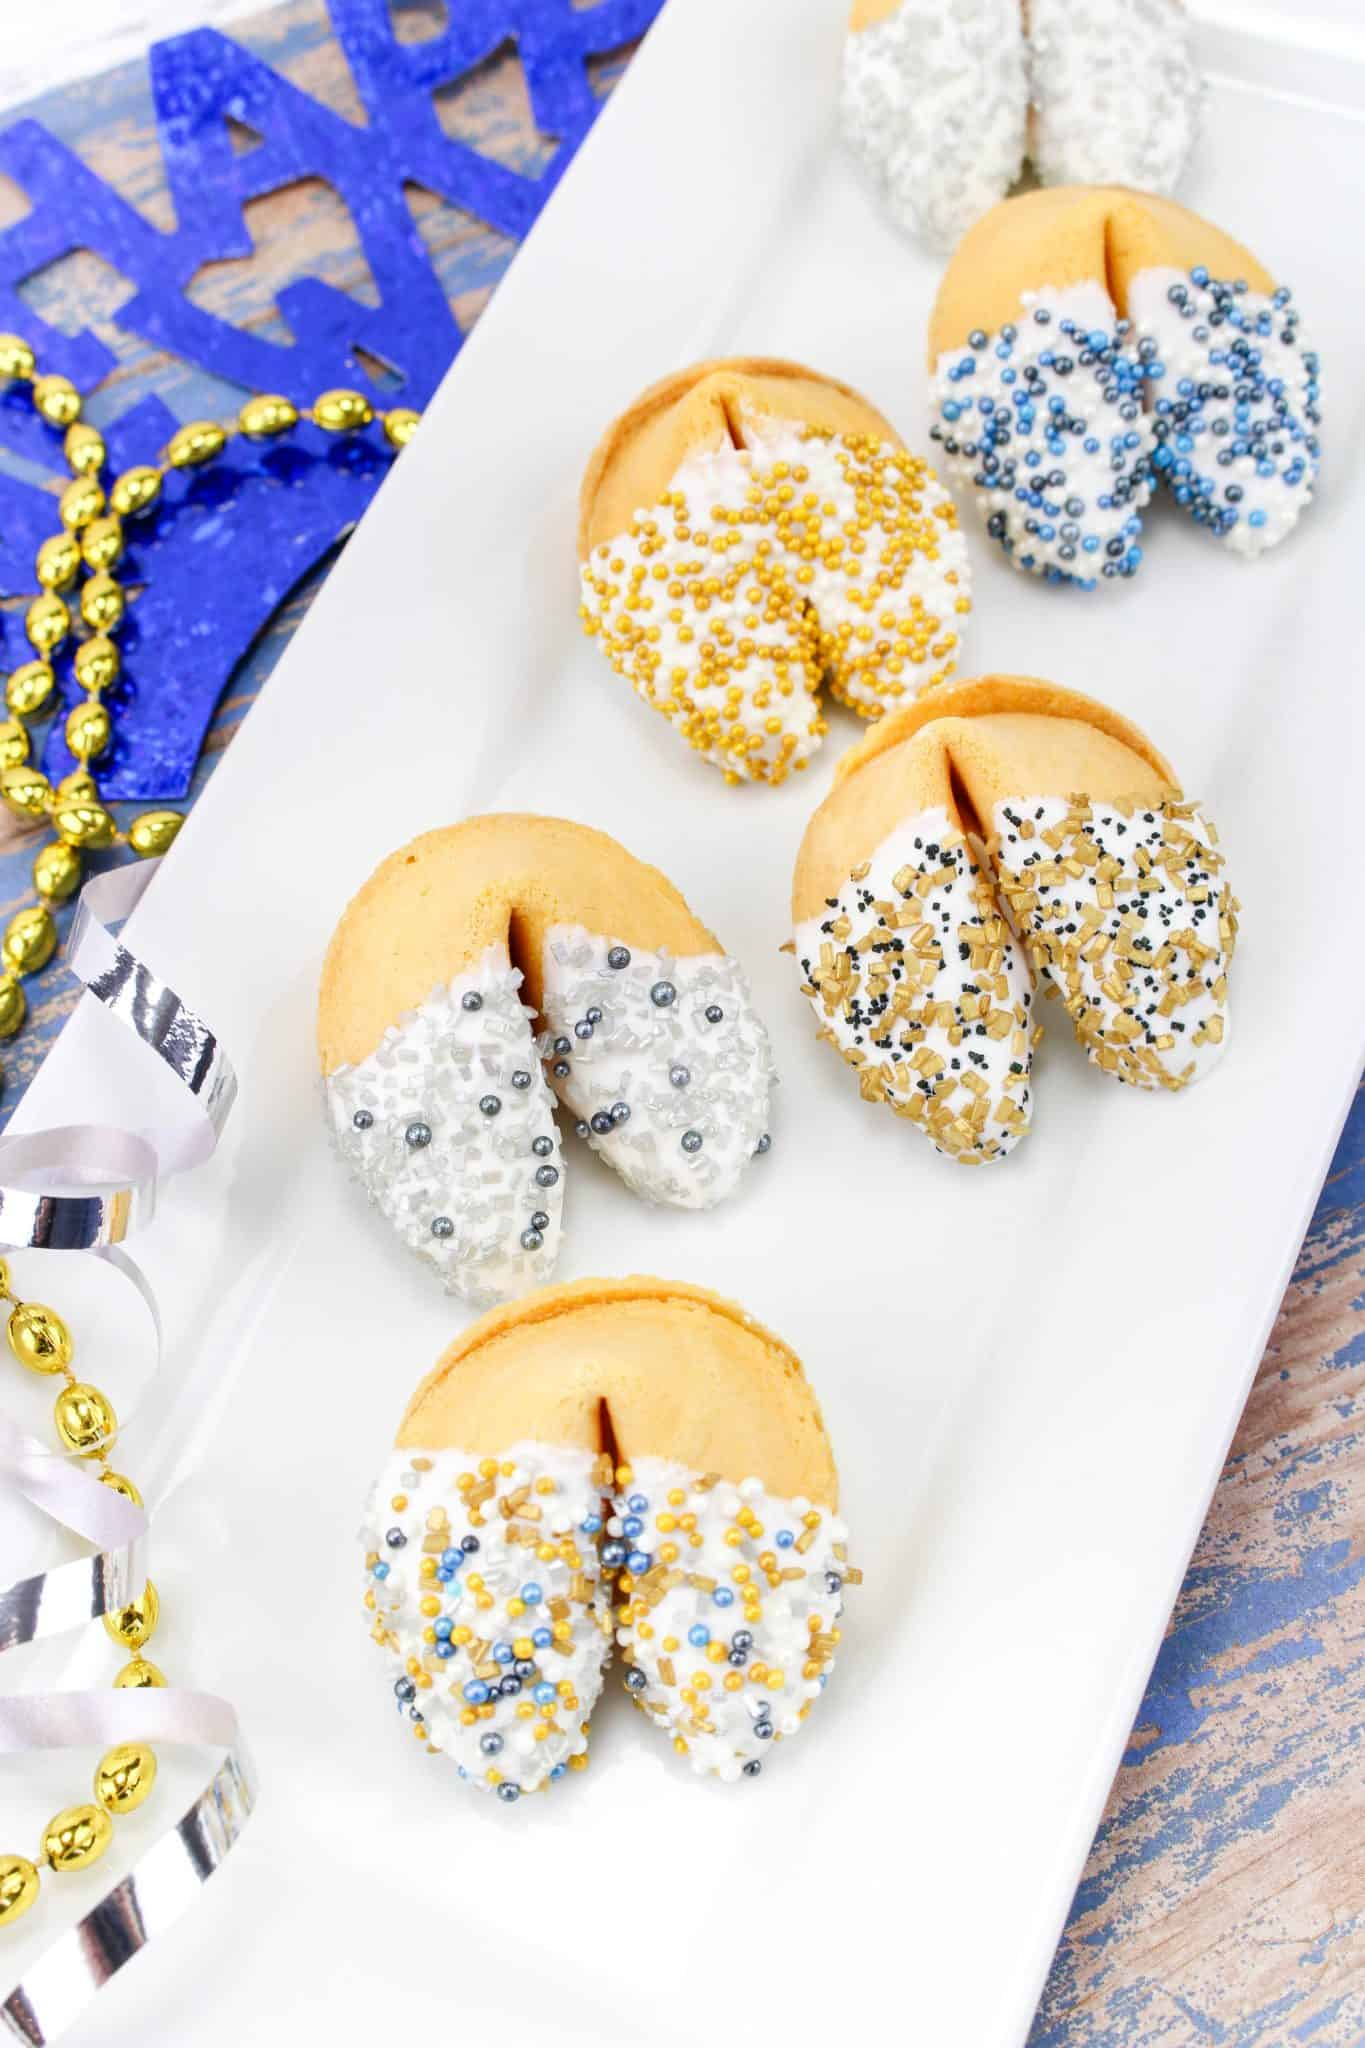 New Year's Eve Chocolate Dipped Fortune Cookies with assorted colored sprinkles on a white plate.